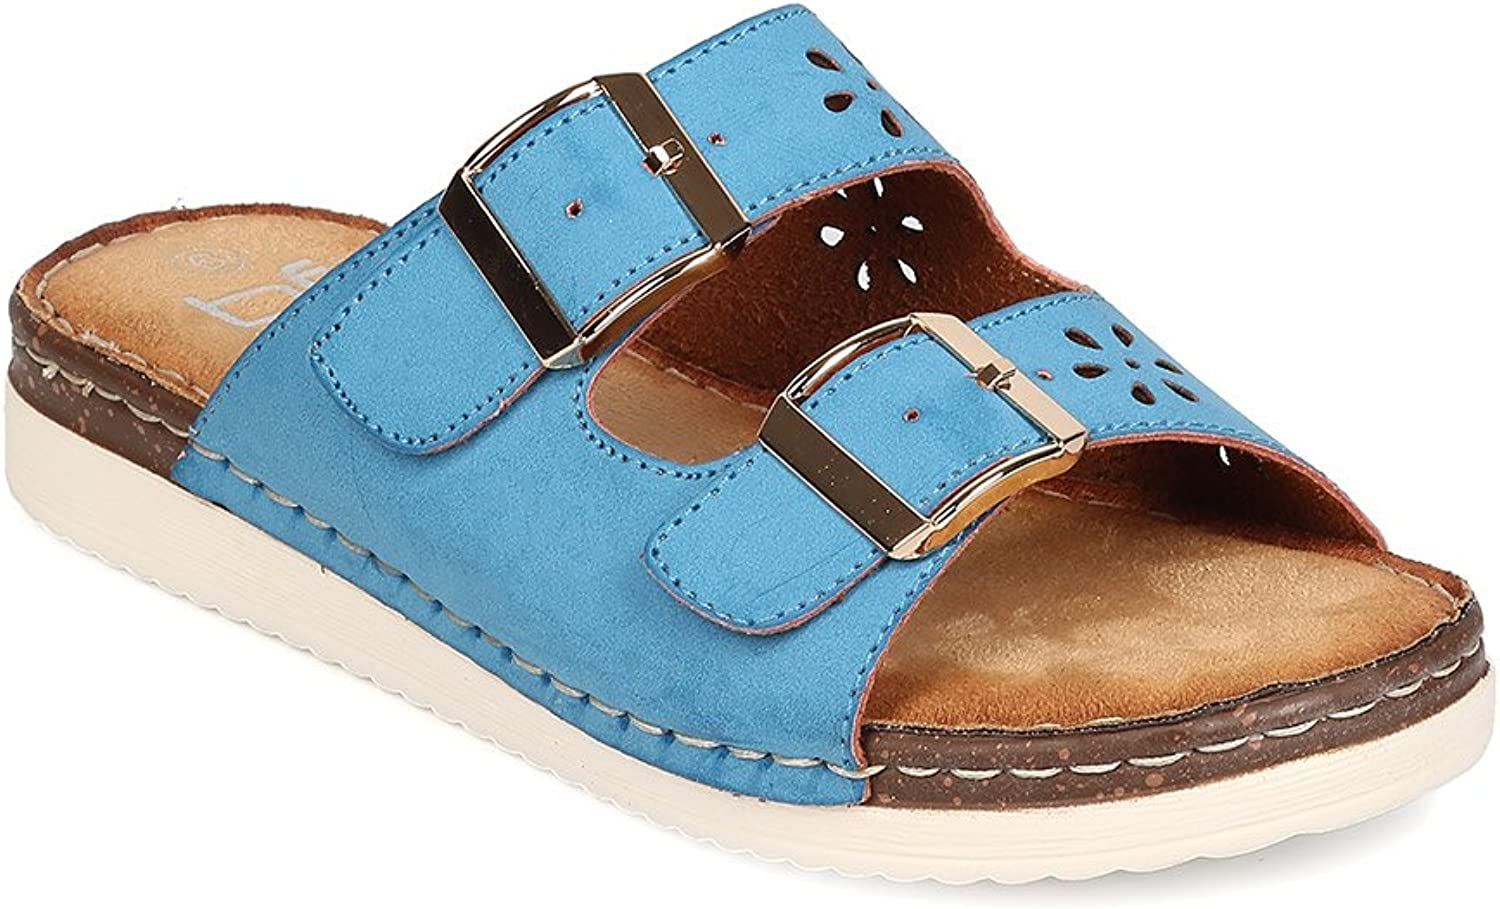 Women Leatherette Open Toe Double Buckle Perforated Sandal FJ67 - bluee